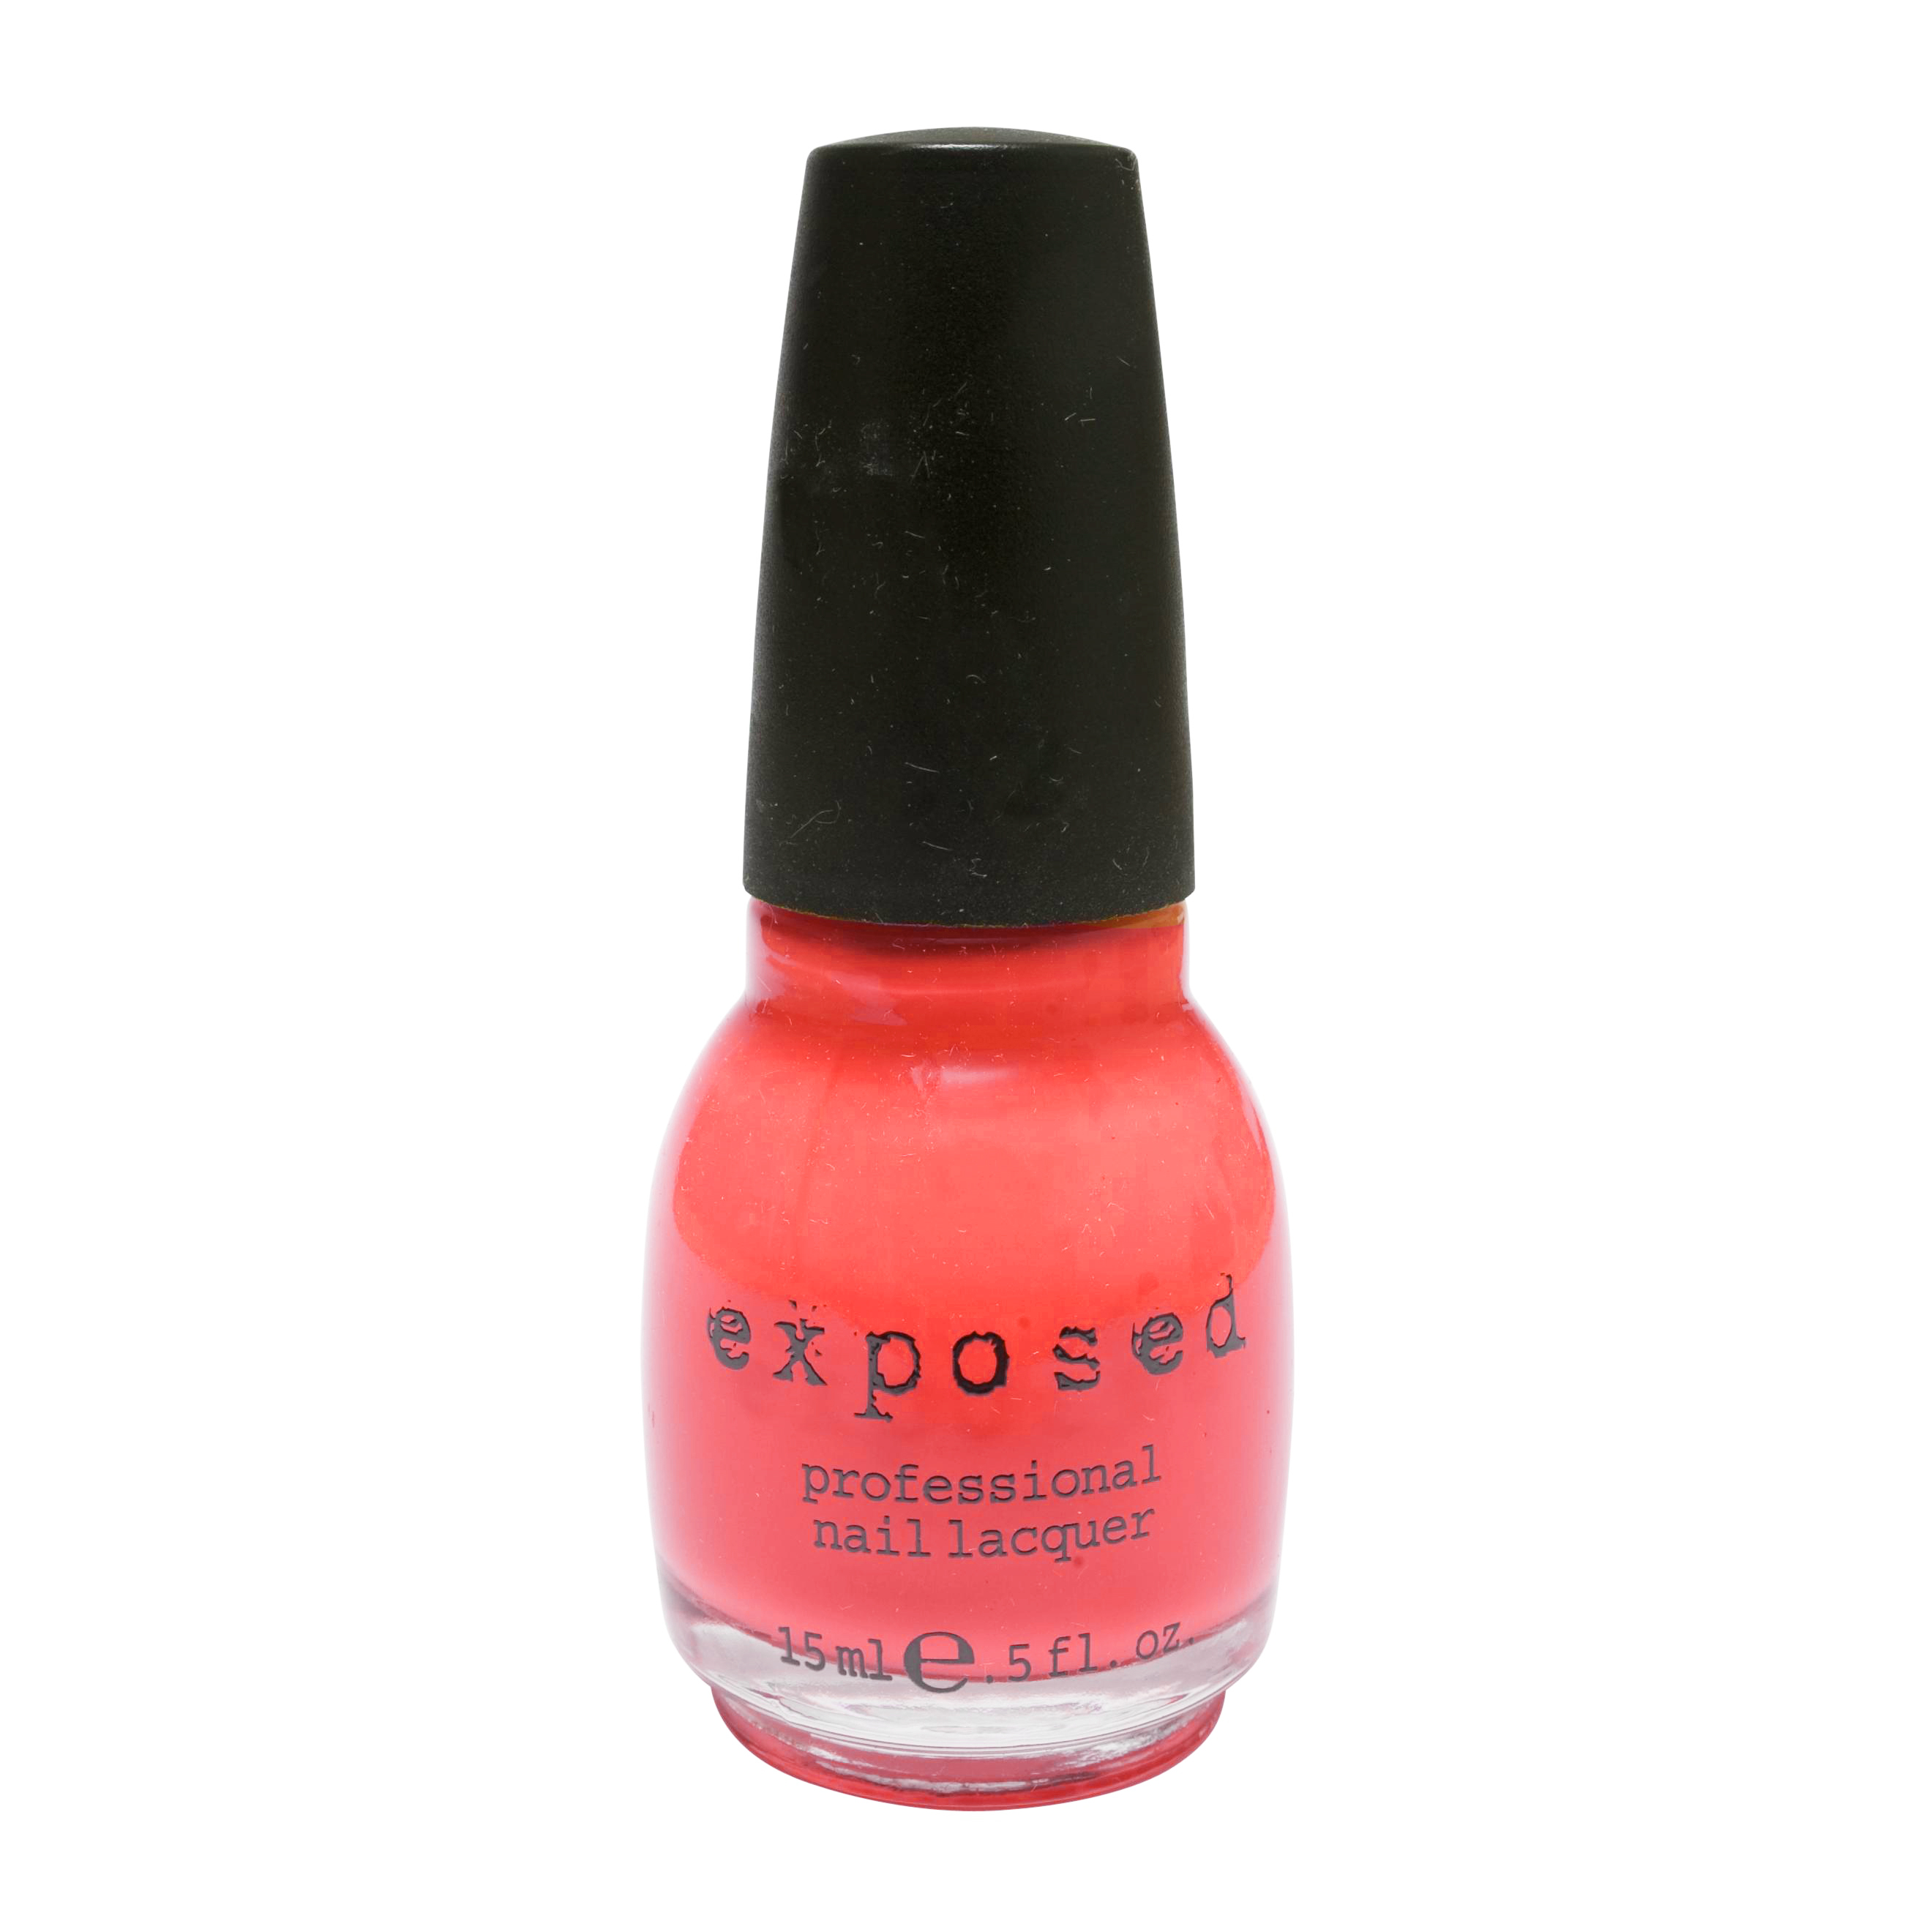 Exposed Professional Nail Lacquer - Sweet Caroline - Just Essentials